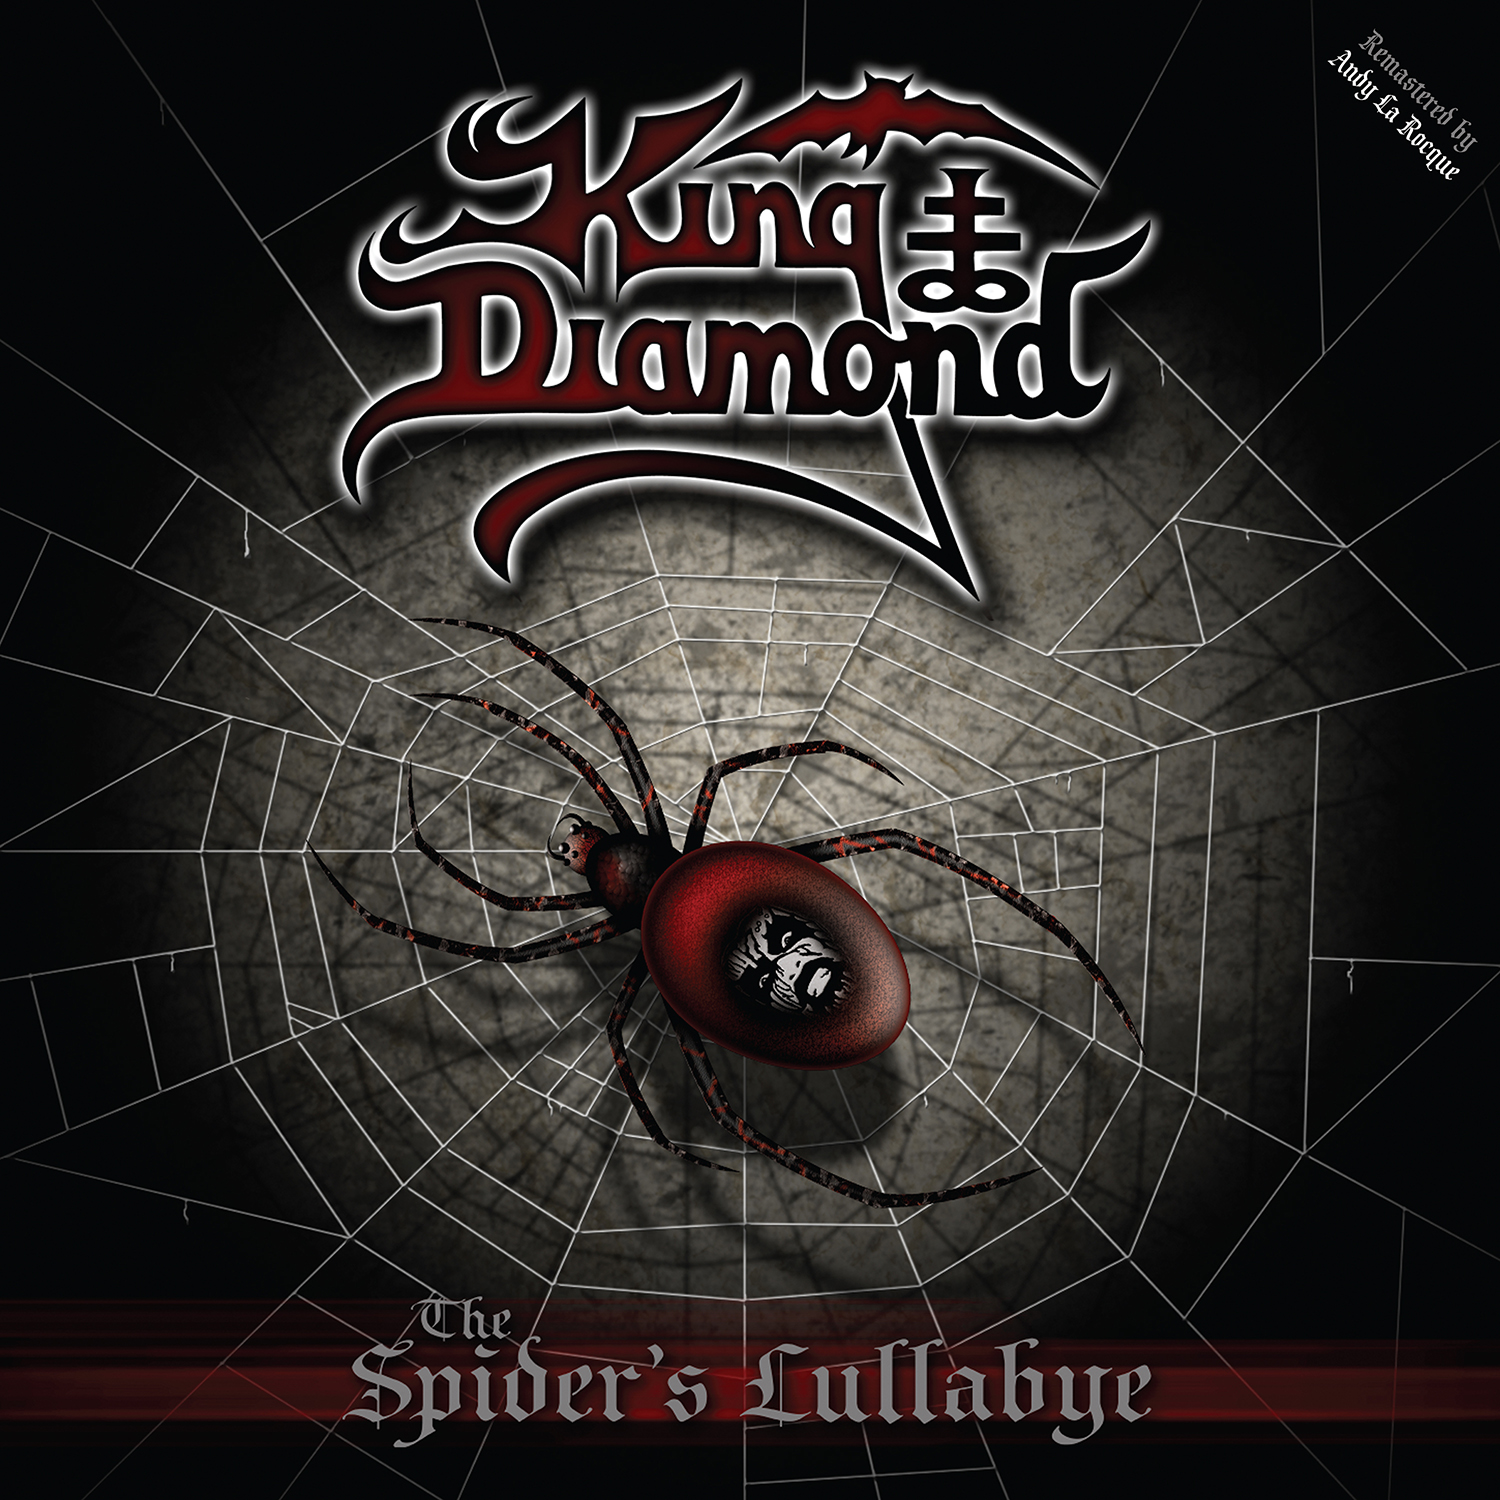 King Diamond – The Spider's Lullabye – CD Review